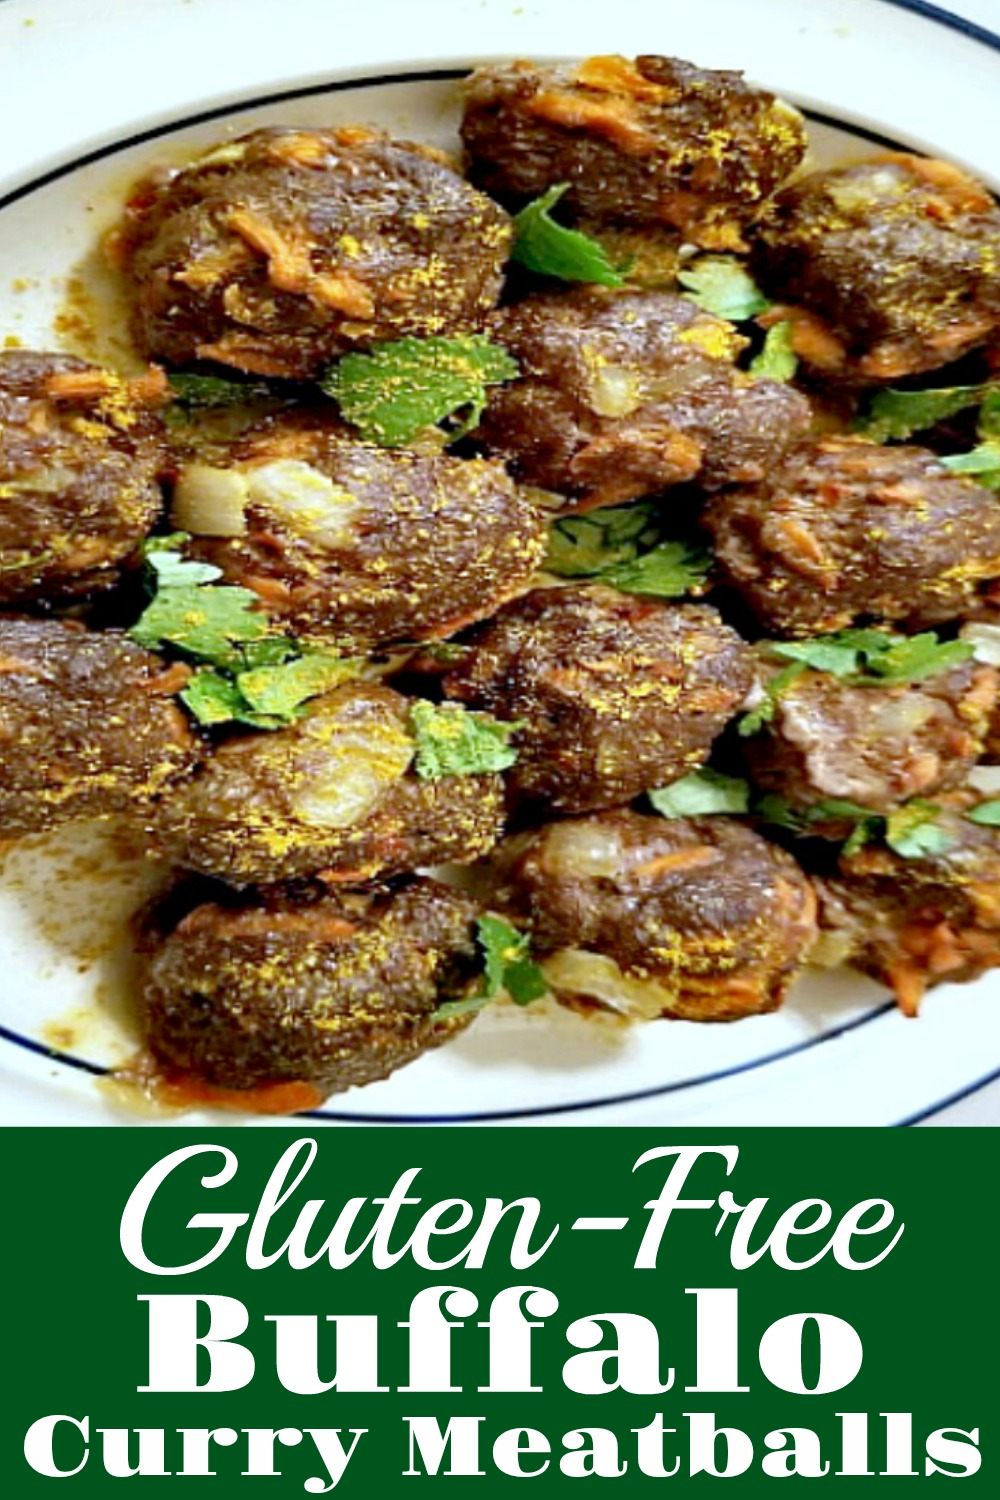 Gluten-Free Buffalo Curry Meatballs on a plate